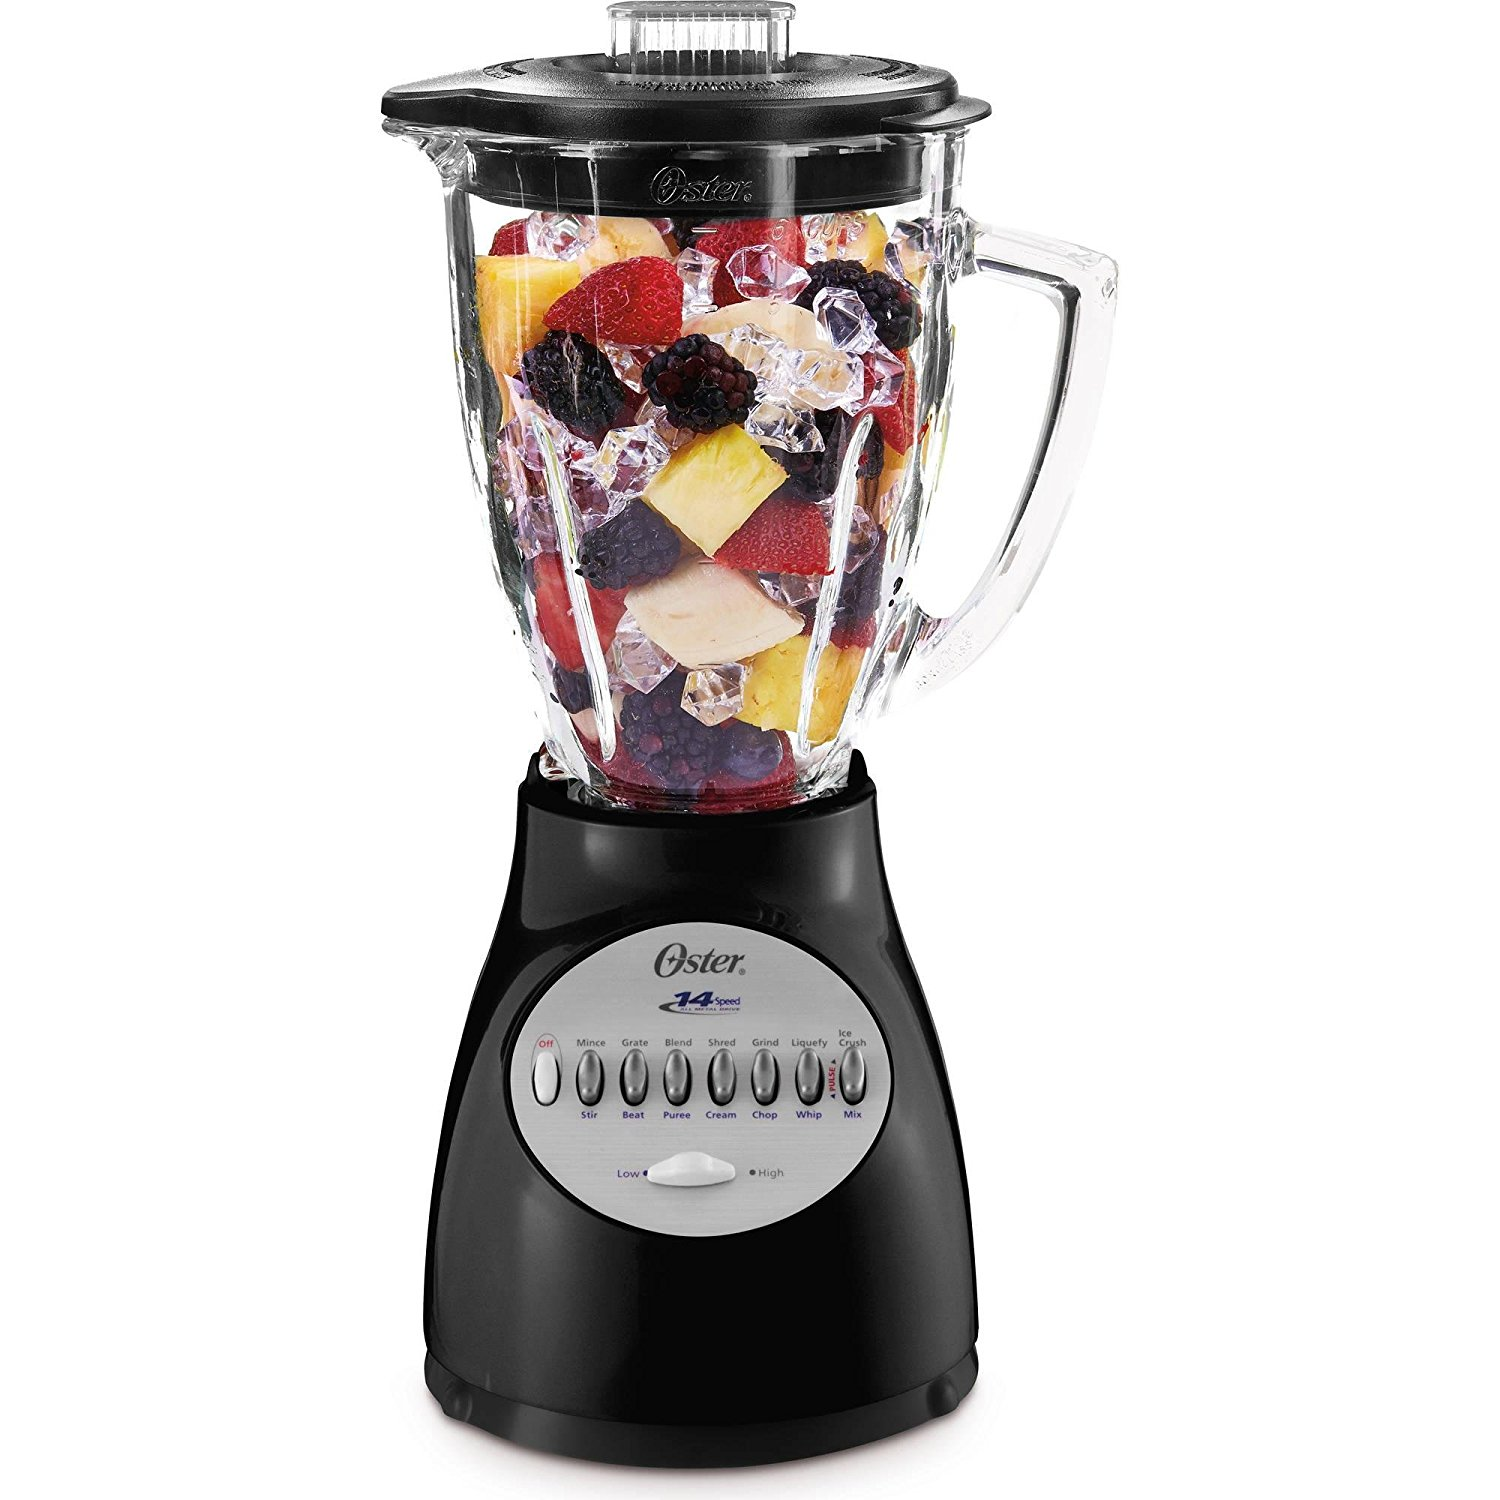 Oster Accurate Blend 200 Blender, 14 Speed, Black (006694-B00-000)